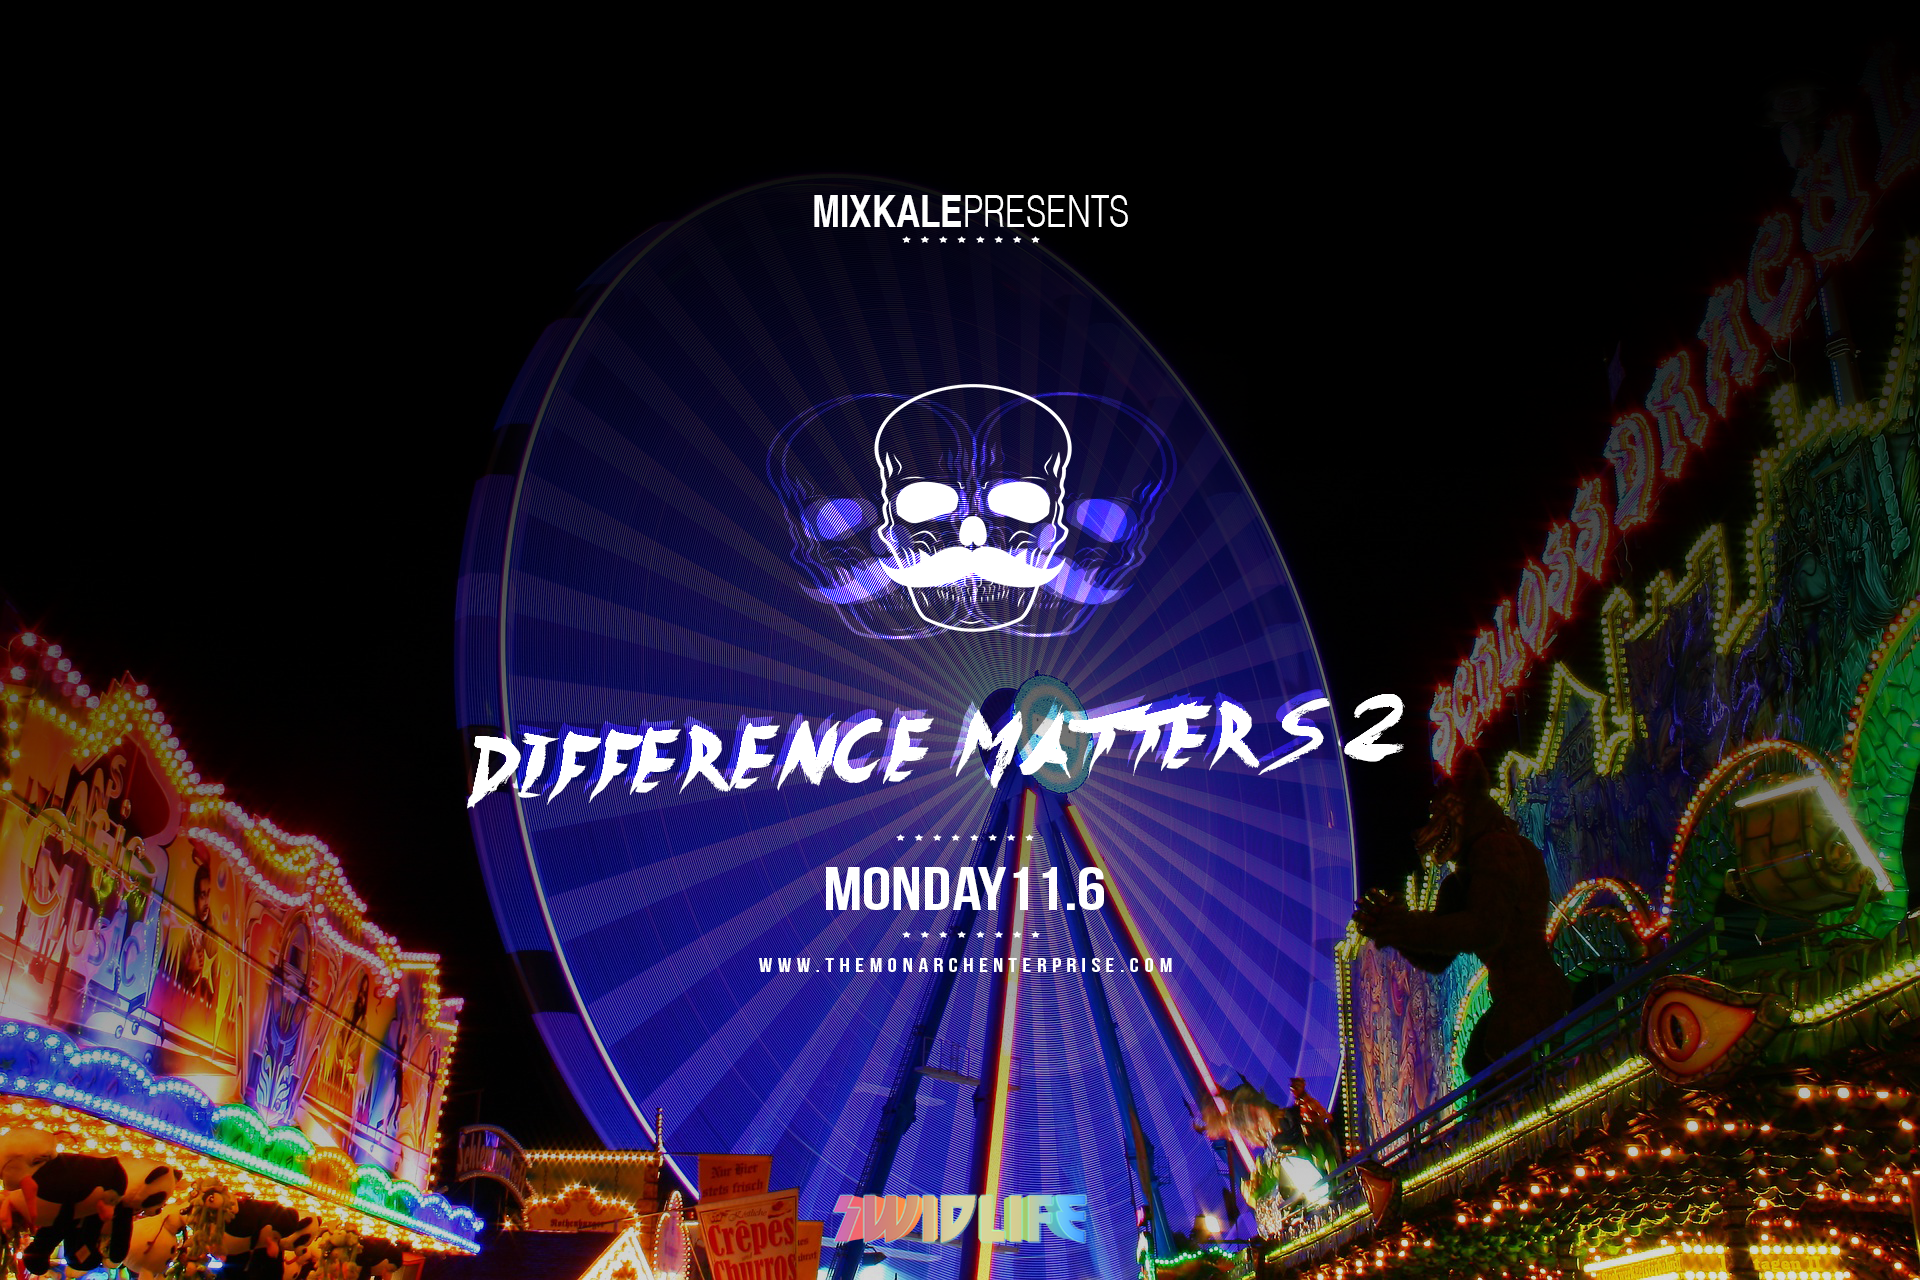 Difference Matters 2 (Apple Music Playlist), swidlife, themonarchenterprise, underground music, rap blogs, new rap blogs, hip hop blogs, free hip hop promotion, music promotion, the daily producer, produer gear, #TME, monarch money , monarch enterprise, the munarch anterprise, SWIDLIFE , sleep when im dead, mixkale, apple music playlists, underground apple music playlists